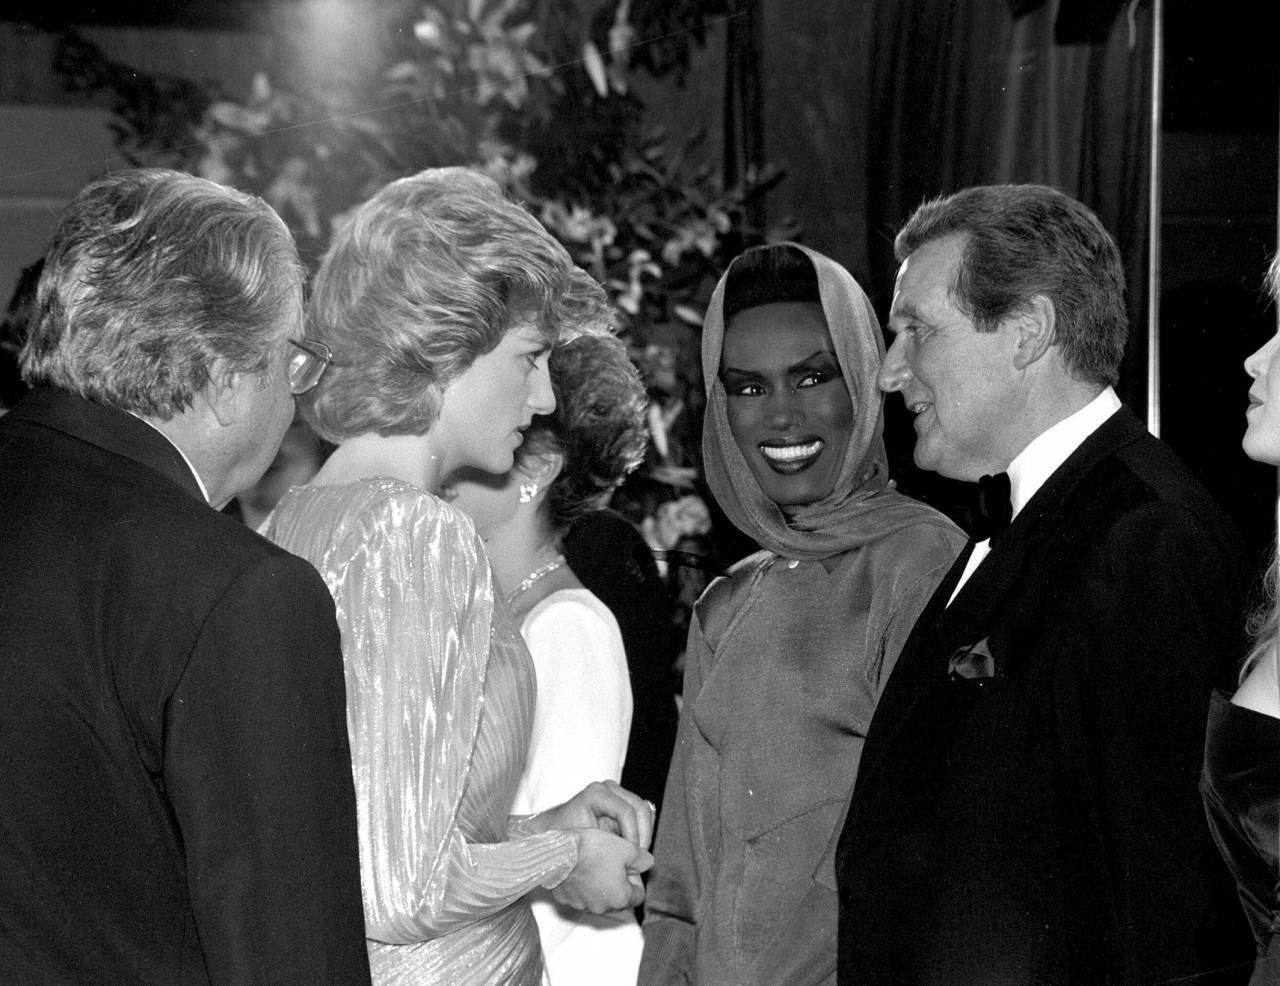 "ALBERT ""CUBBY"" BROCCOLI, PRINCESS DIANA, GRACE JONES, PATRICK MACNEE,""A VIEW TO A KILL"" PREMIERE. 12/06/85 'A View To A Kill' film premiere, London, Britain - 12 Jun 1985"